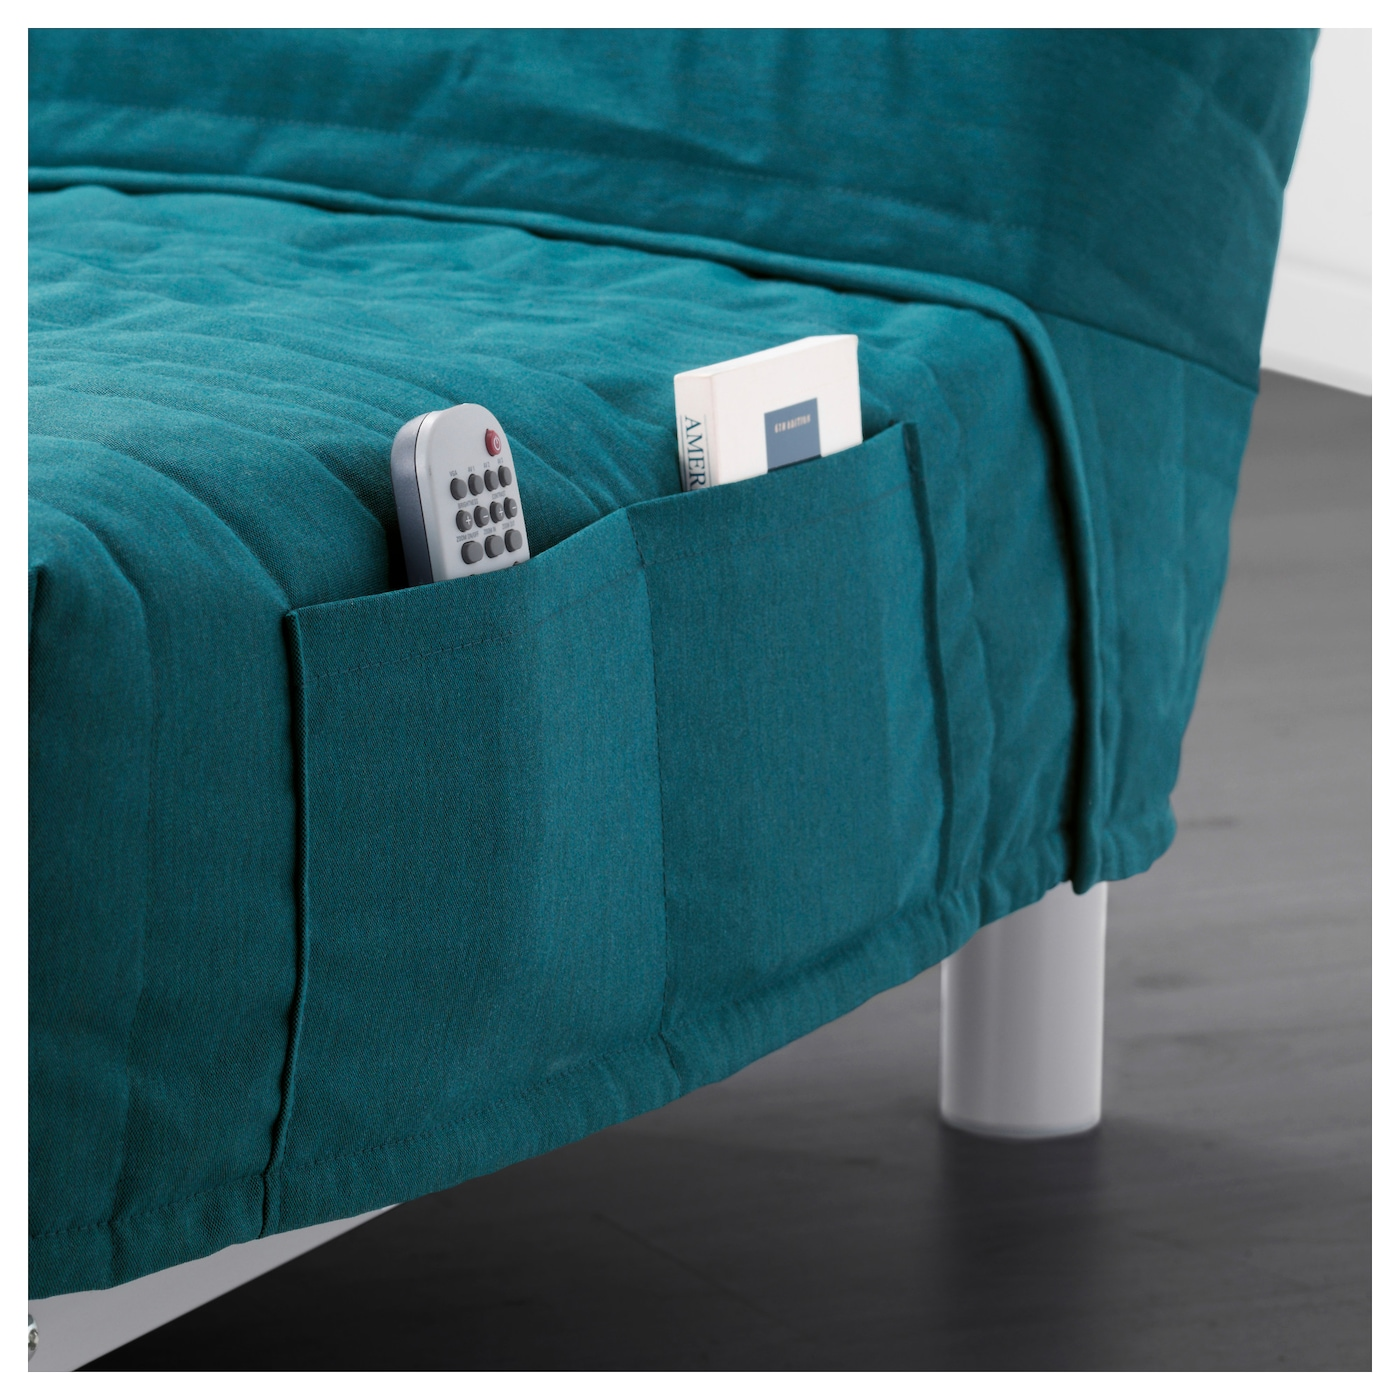 BEDDINGE L V S Three Seat Sofa Bed Knisa Turquoise IKEA